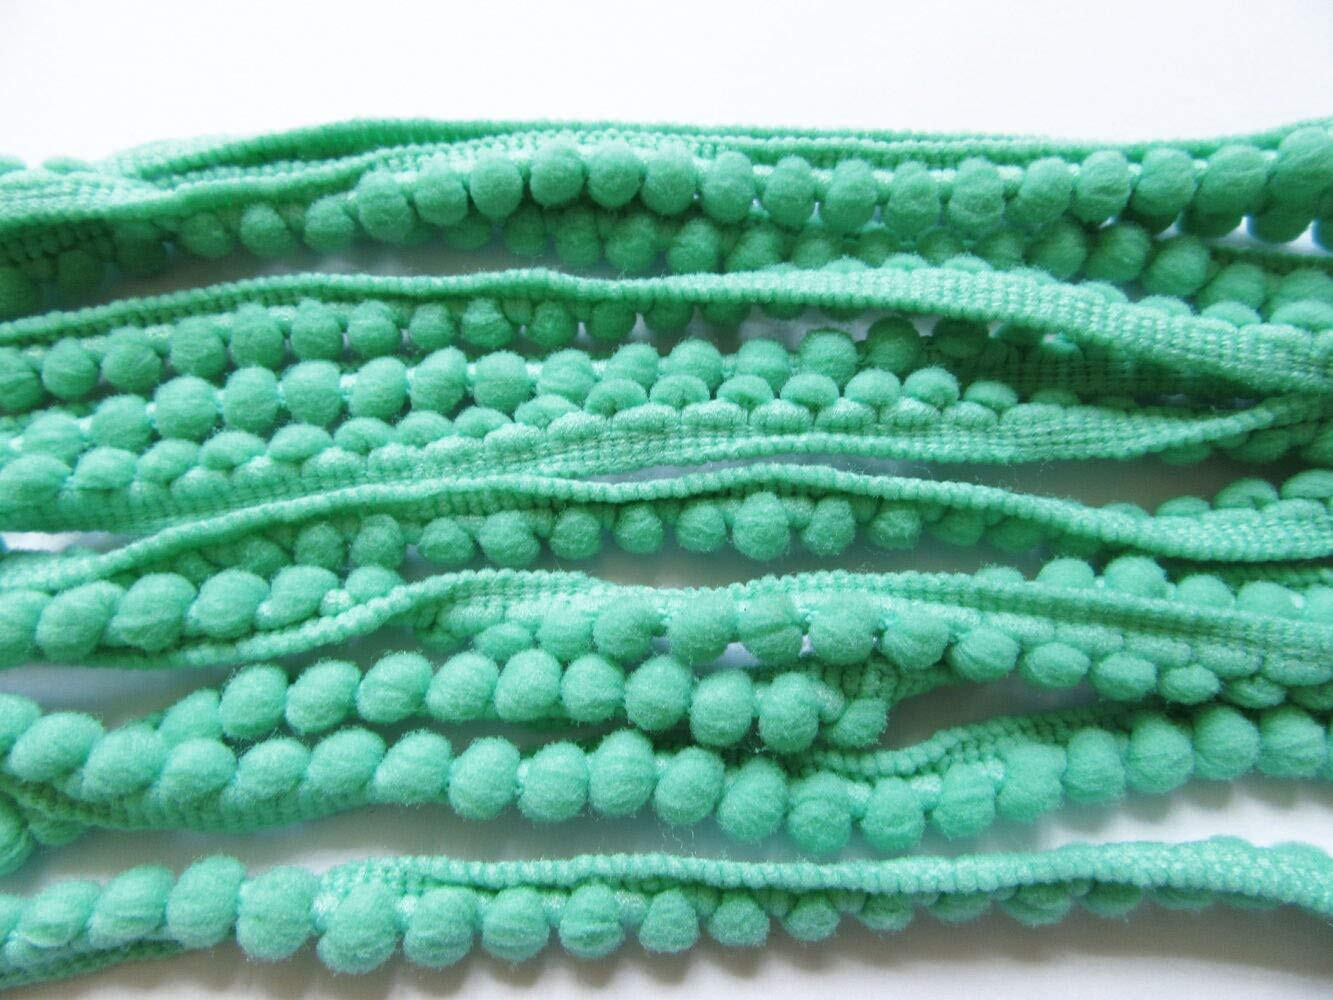 YYCRAFT 10 Yards 3//8 Wide Tiny Pom Pom Ball Fringe Trim DIY Craft Sewing Accessory for Home Curtain Clothes Pillow Decoration pom Size 5mm Jade